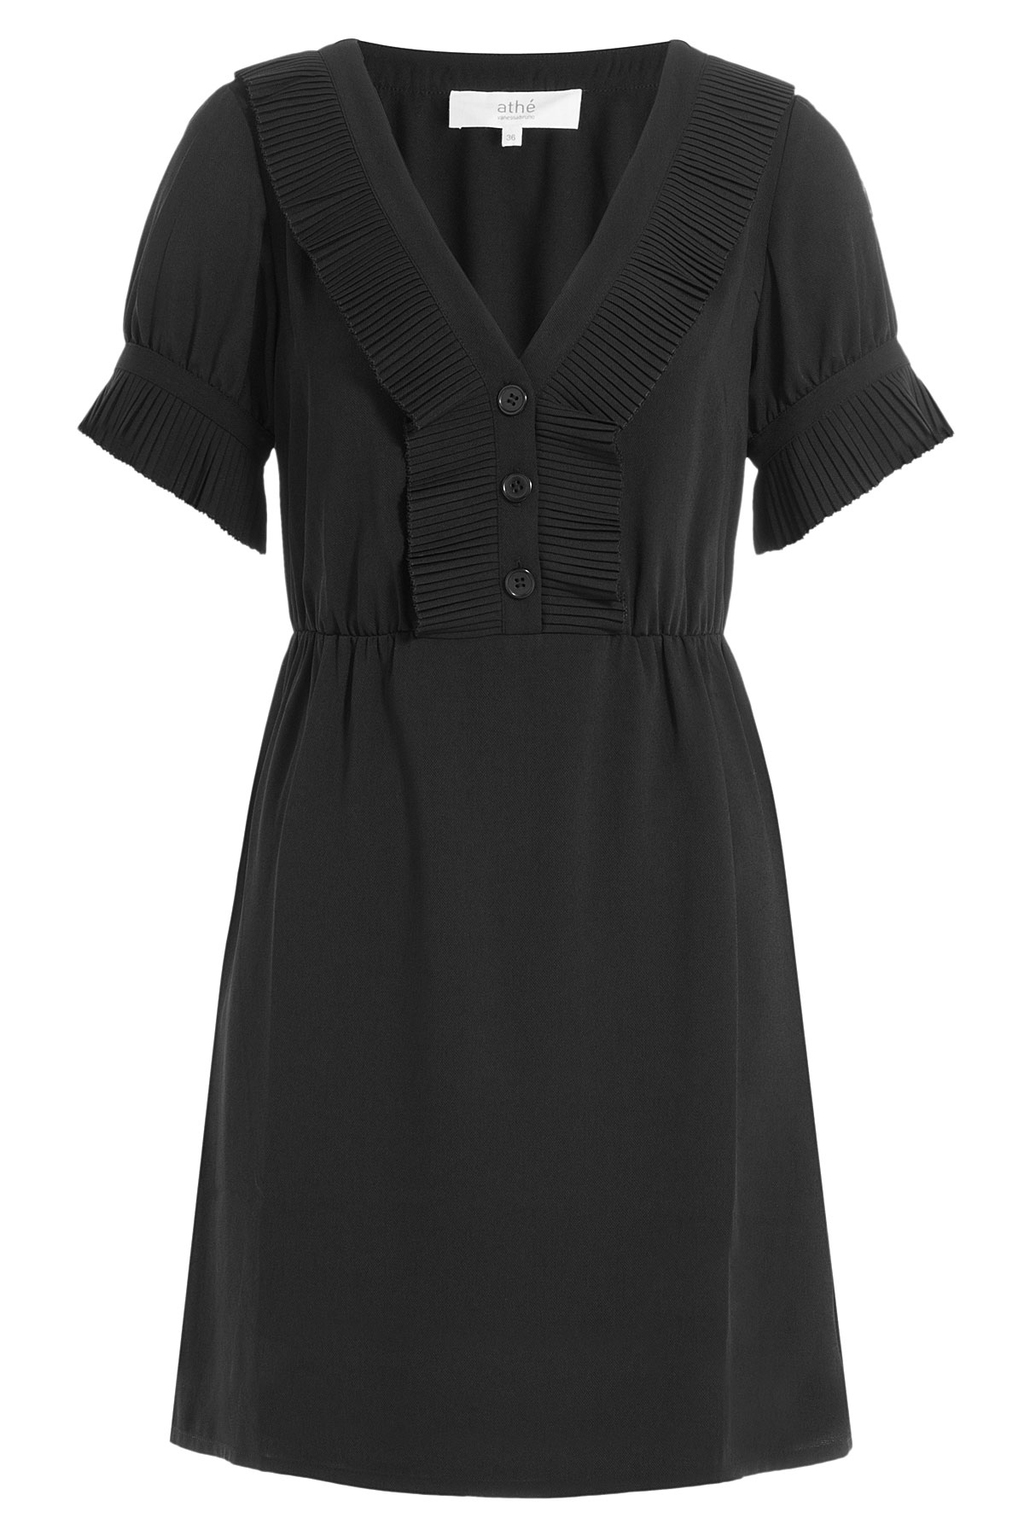 Dress With Pleats - length: mid thigh; neckline: v-neck; pattern: plain; predominant colour: black; occasions: evening; fit: fitted at waist & bust; style: fit & flare; fibres: polyester/polyamide - 100%; sleeve length: short sleeve; sleeve style: standard; texture group: crepes; pattern type: fabric; season: a/w 2016; wardrobe: event